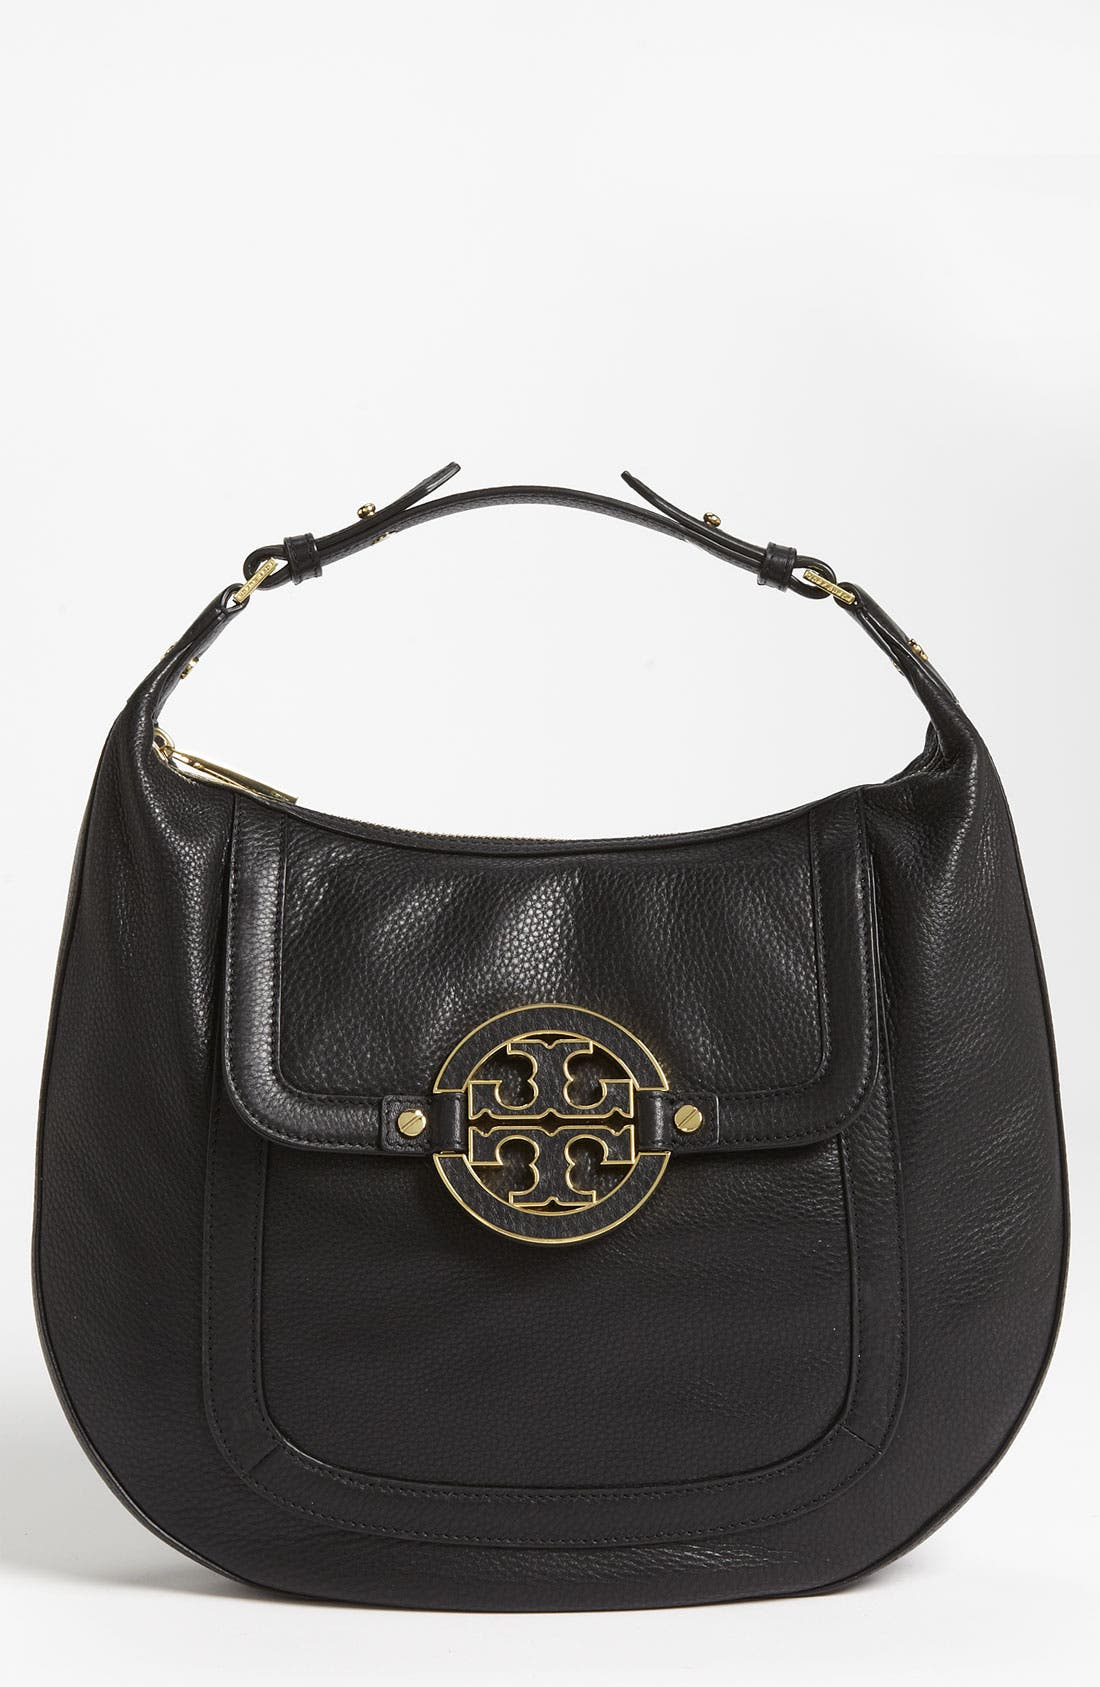 Alternate Image 1 Selected - Tory Burch 'Amanda - Mini' Flat Hobo